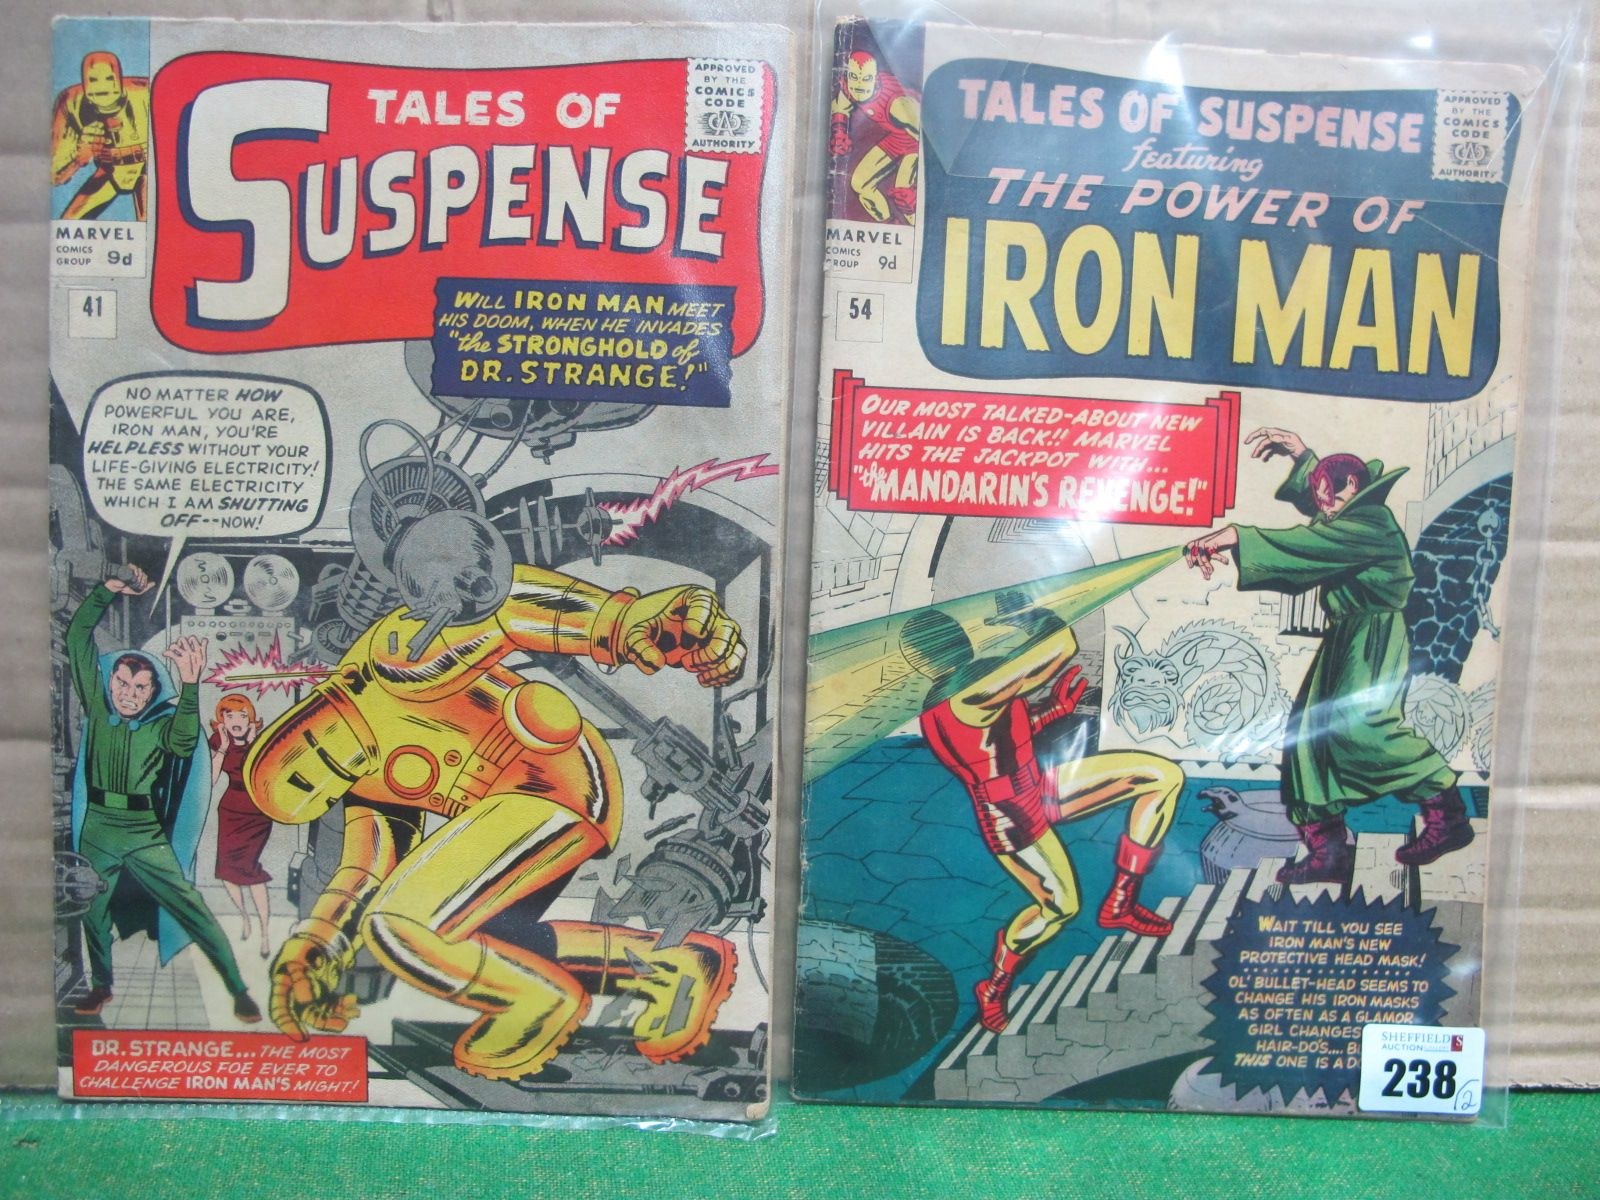 Tales of Suspense #41/No.41, #54/No.54, 9d, both in used well read condition.